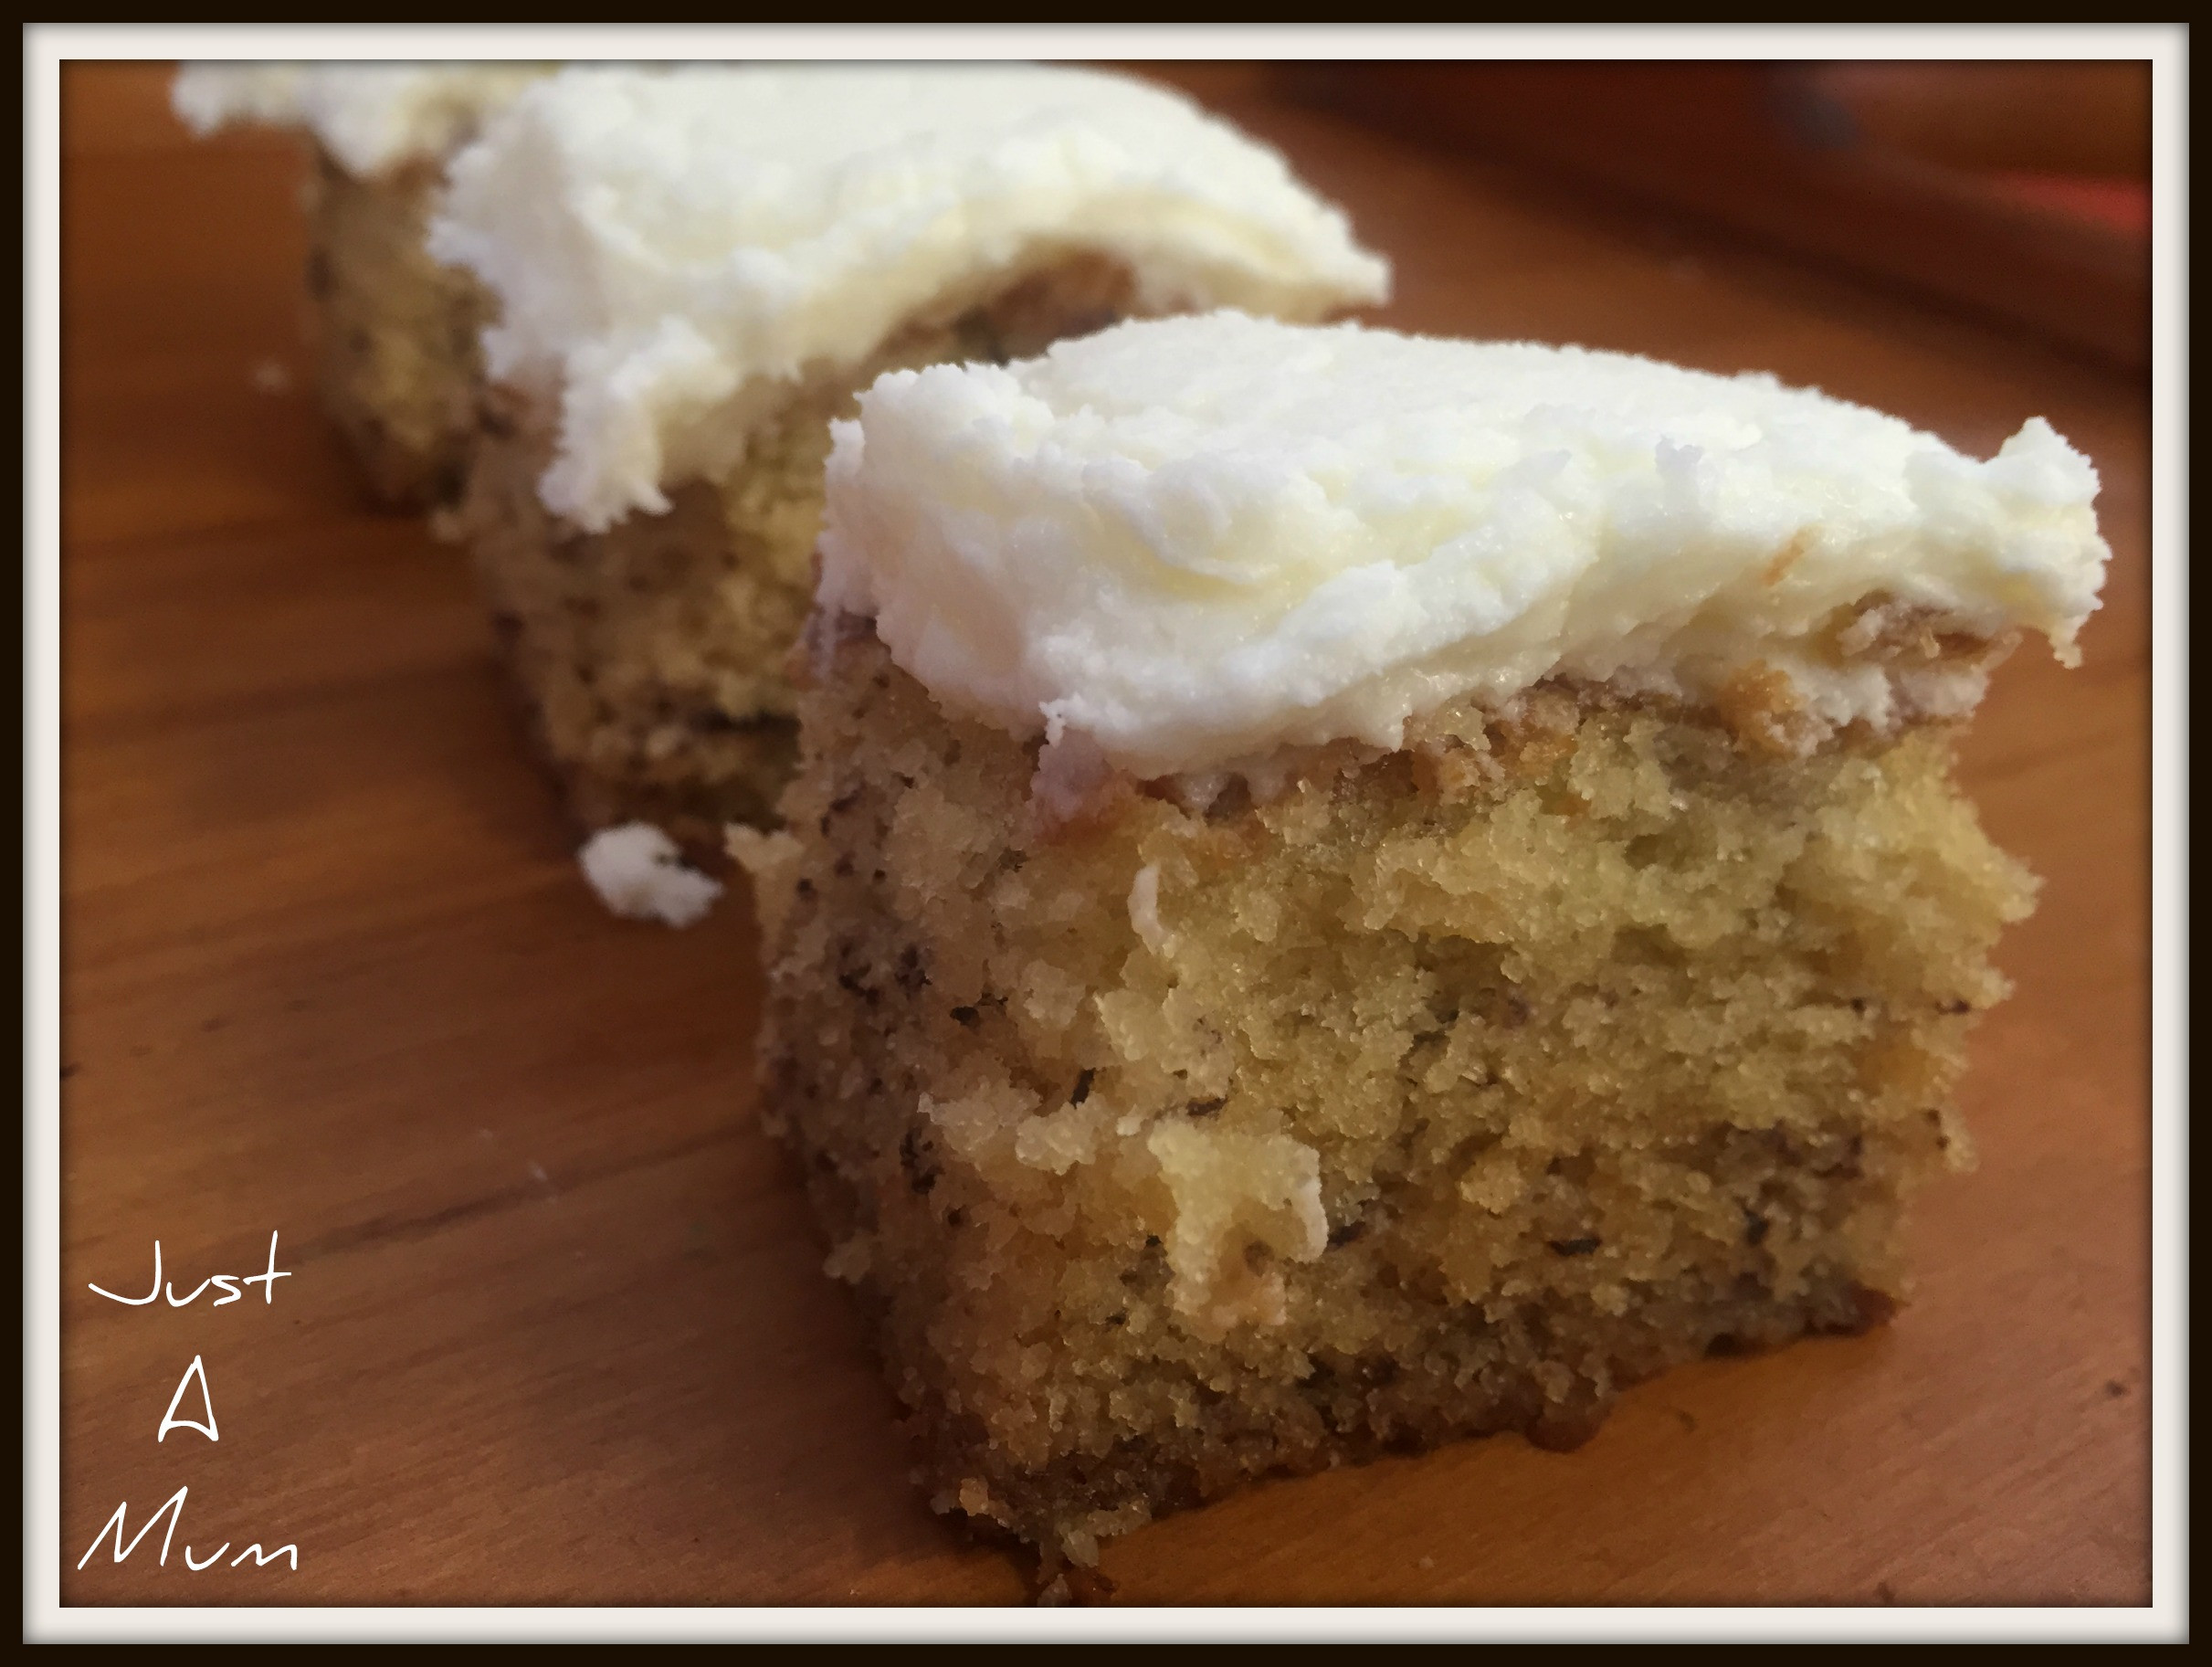 """Crazy Banana Cake  The """"You Just Have to Make It"""" Banana Cake – Just a Mum"""